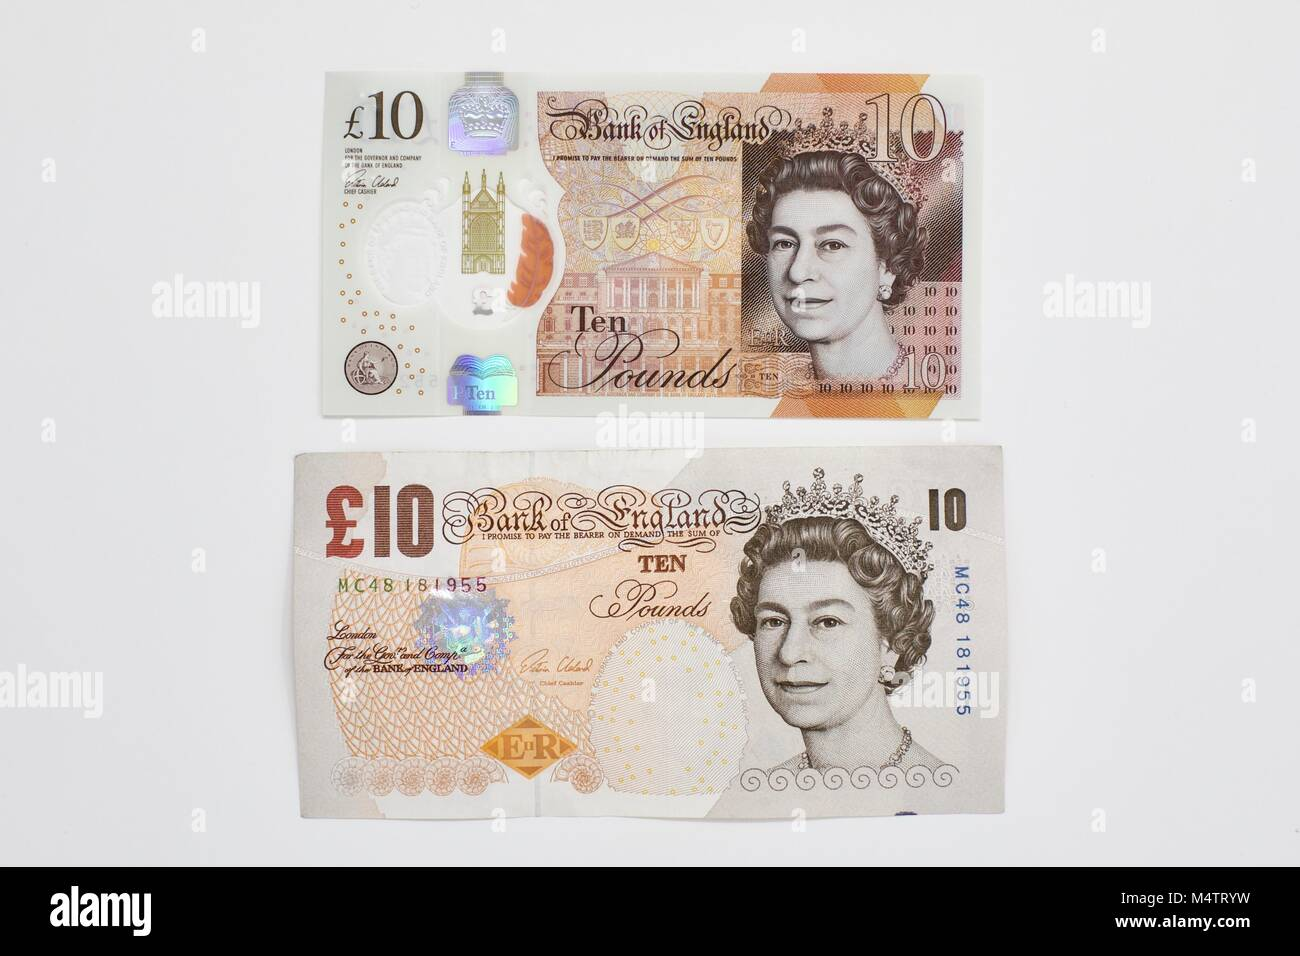 The new polymer £10 banknote and the old £10 pound banknote on a white background - Stock Image